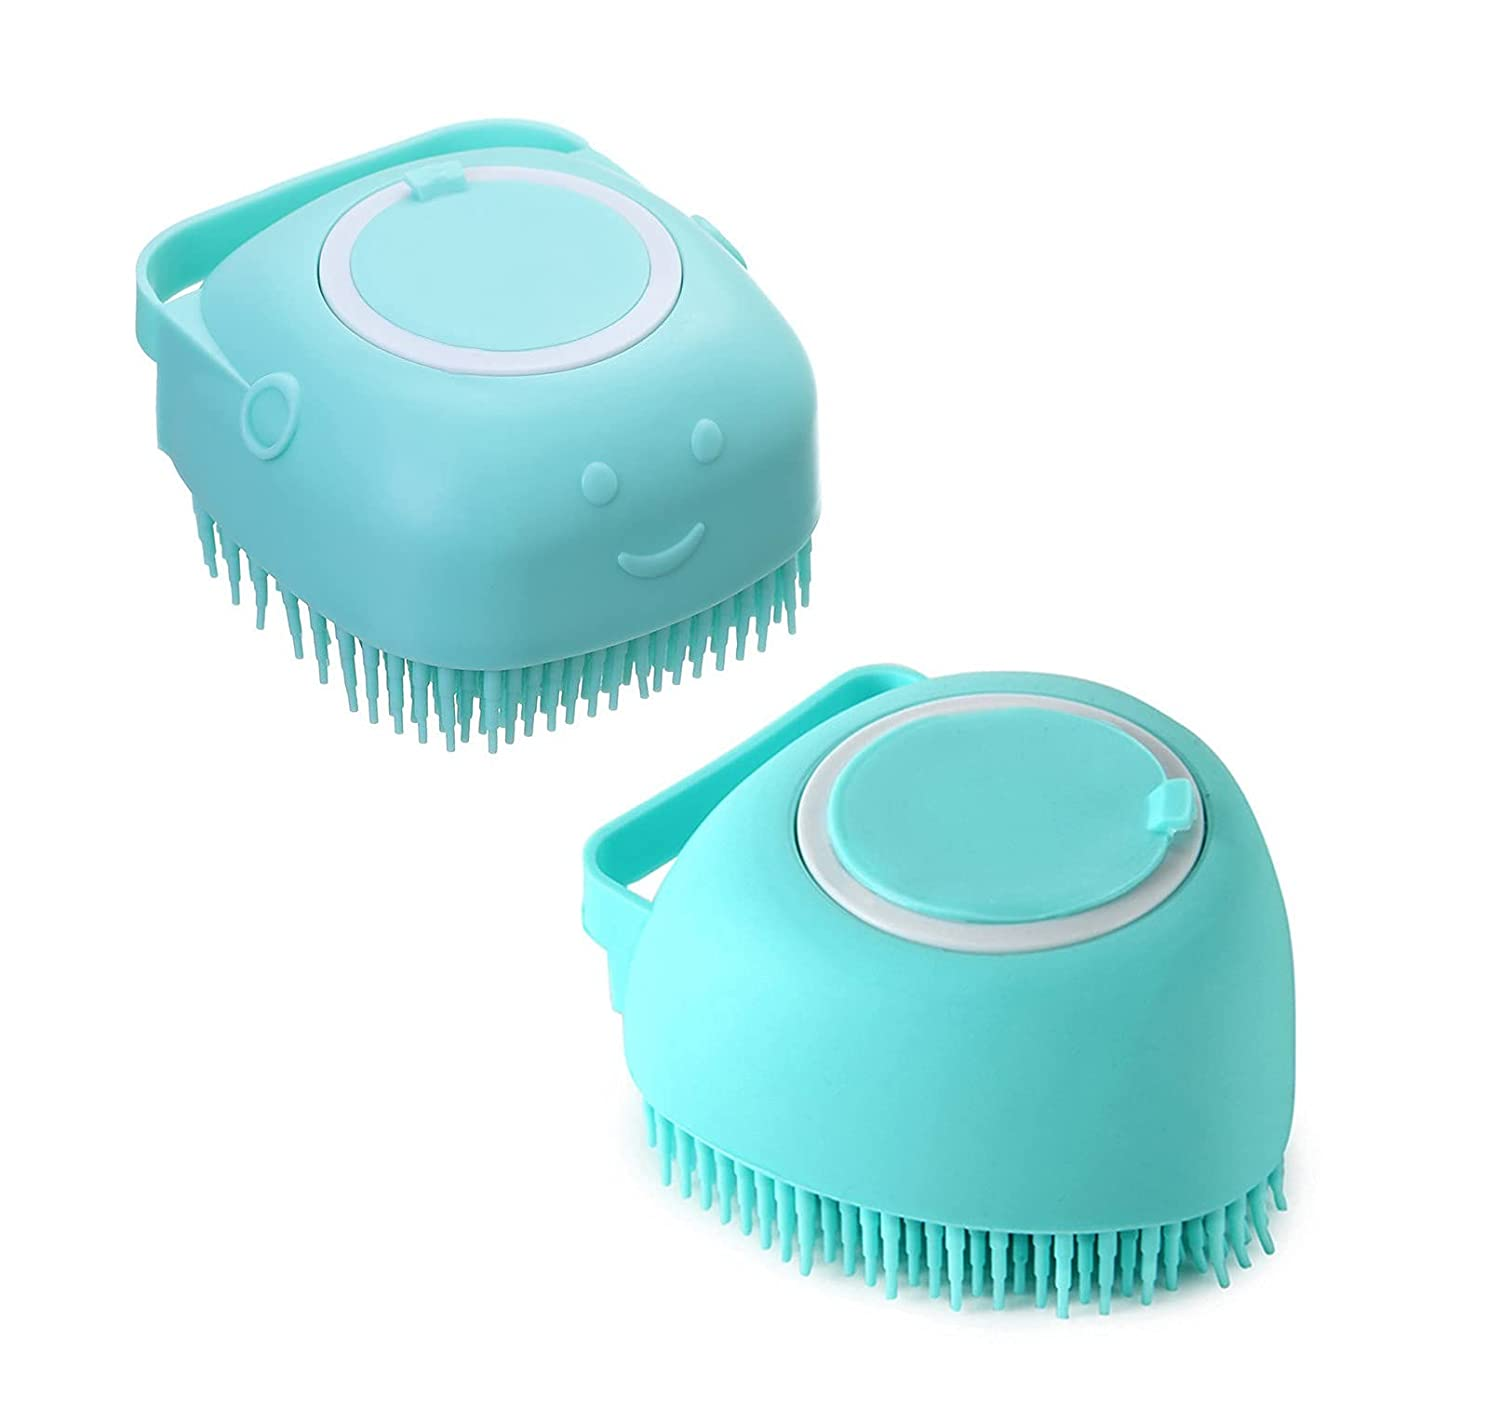 2 pcs Silicone Body Brush Massage Scrubber Shower Discount is also underway Loofah High quality new